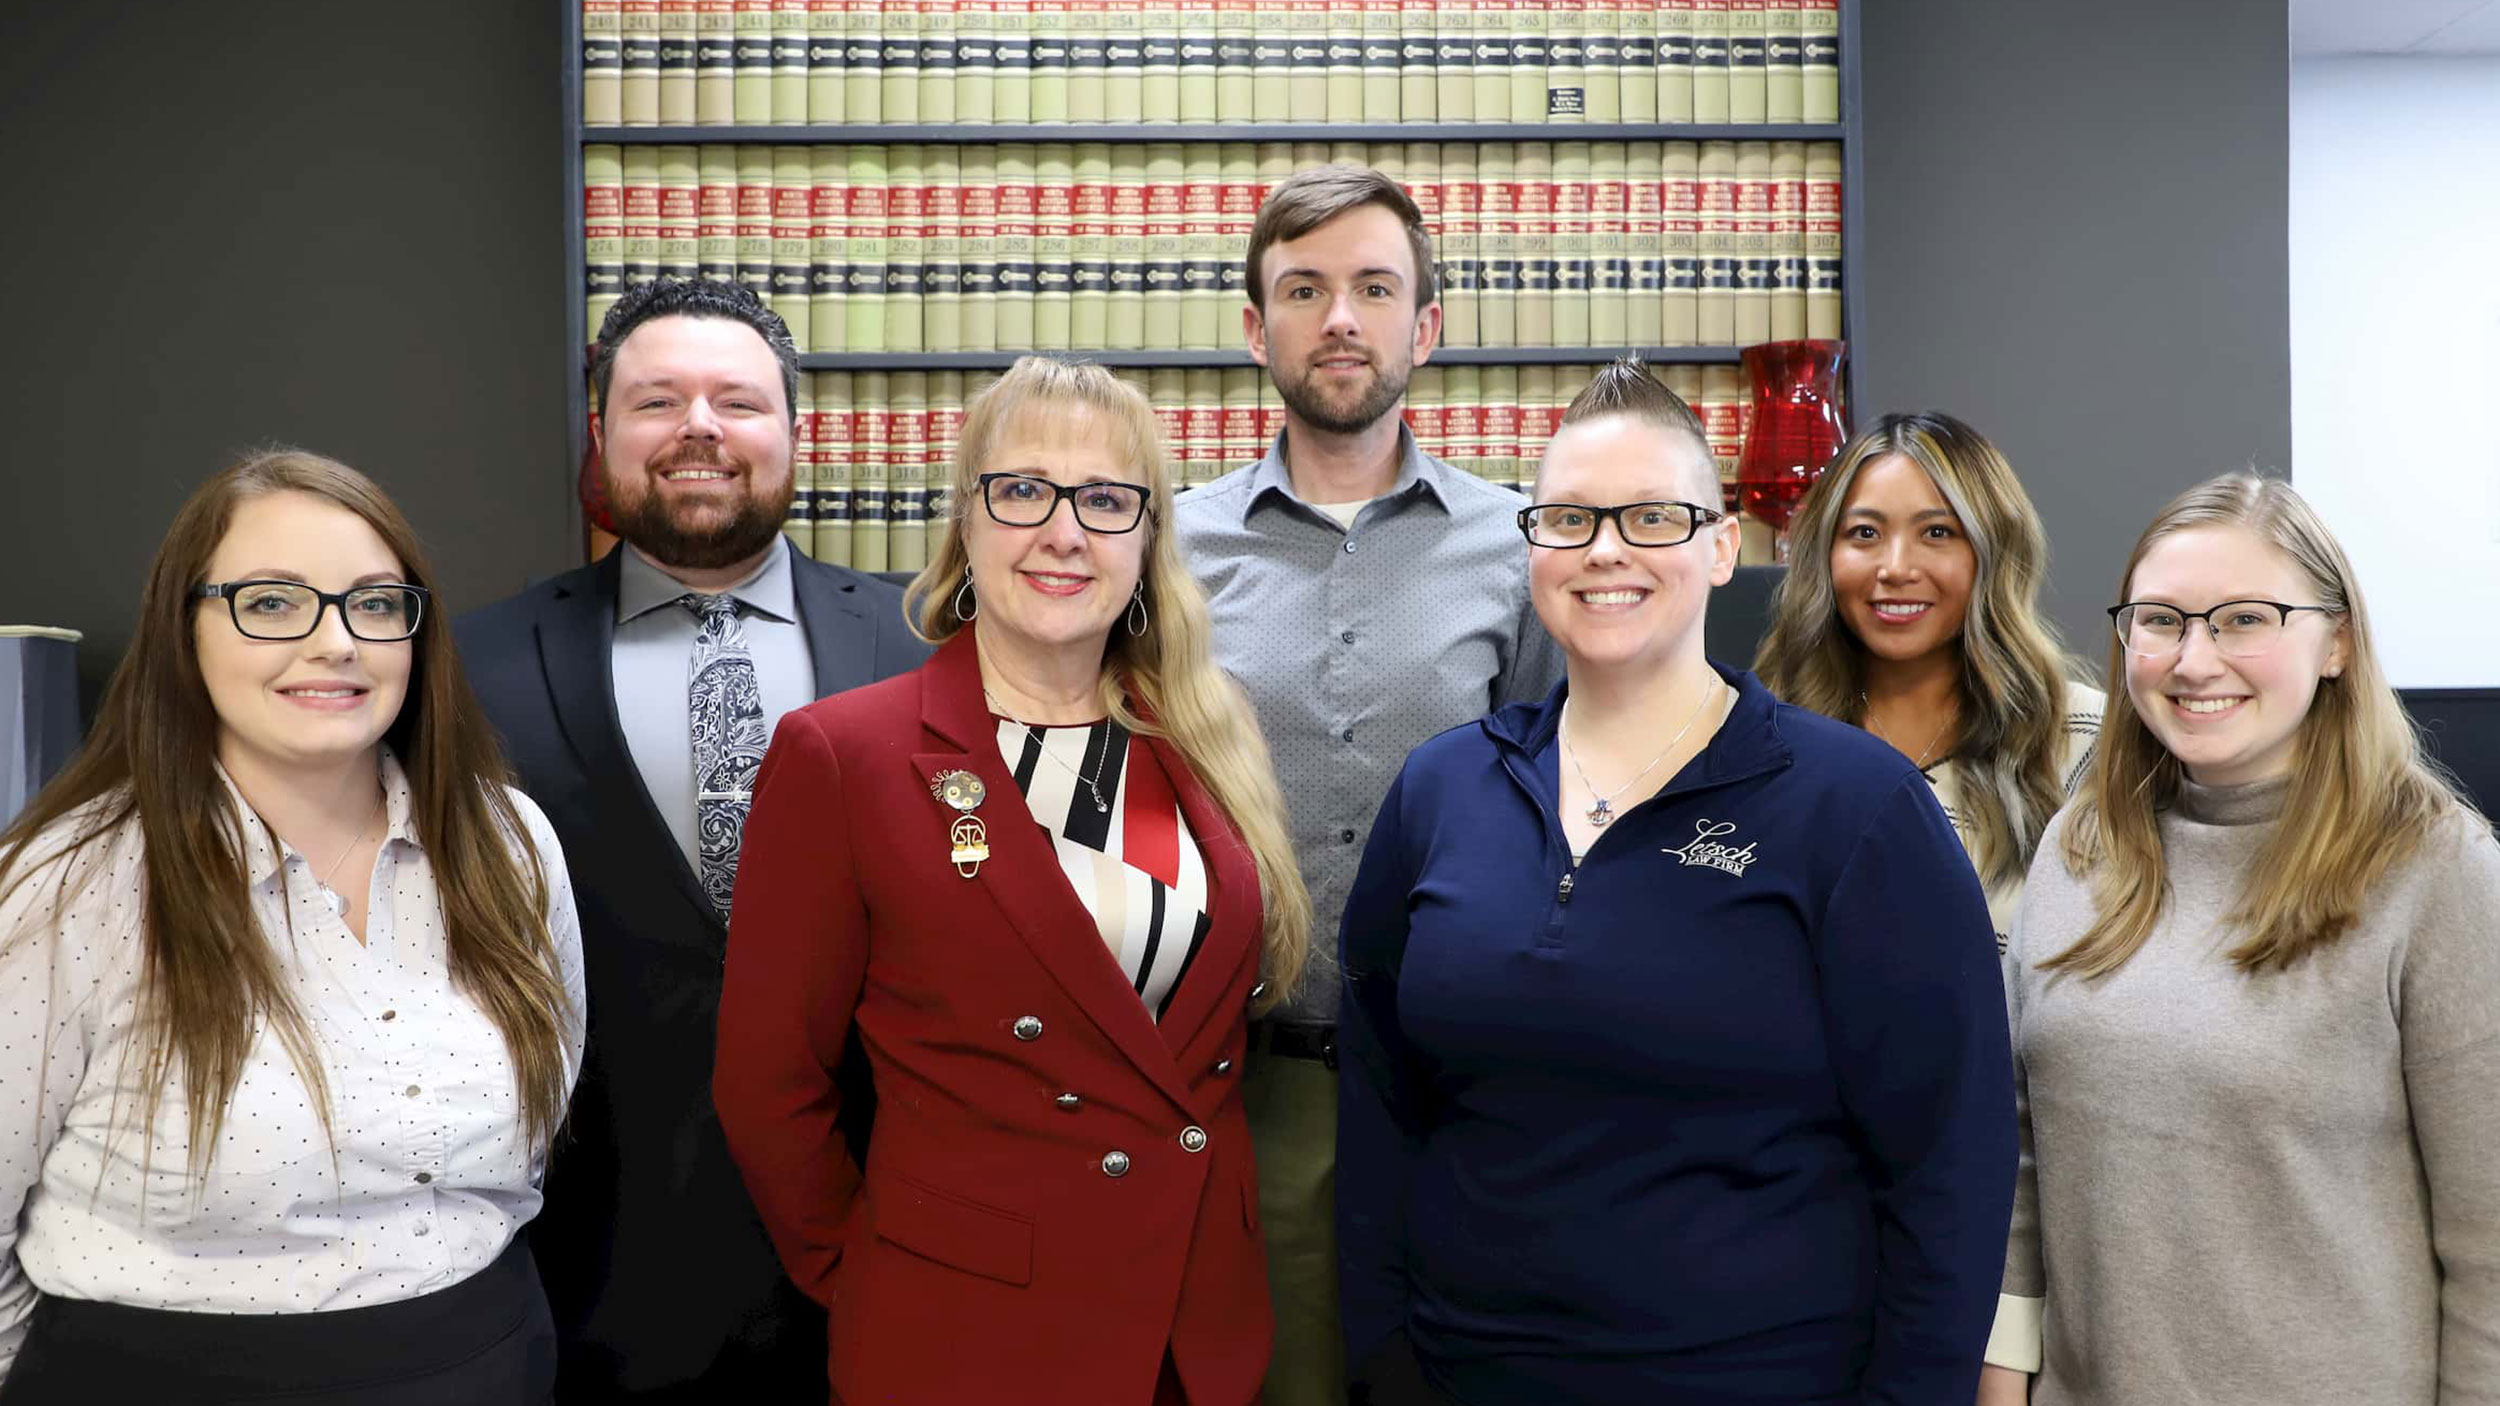 Team picture of the team at Letsch Law Firm.